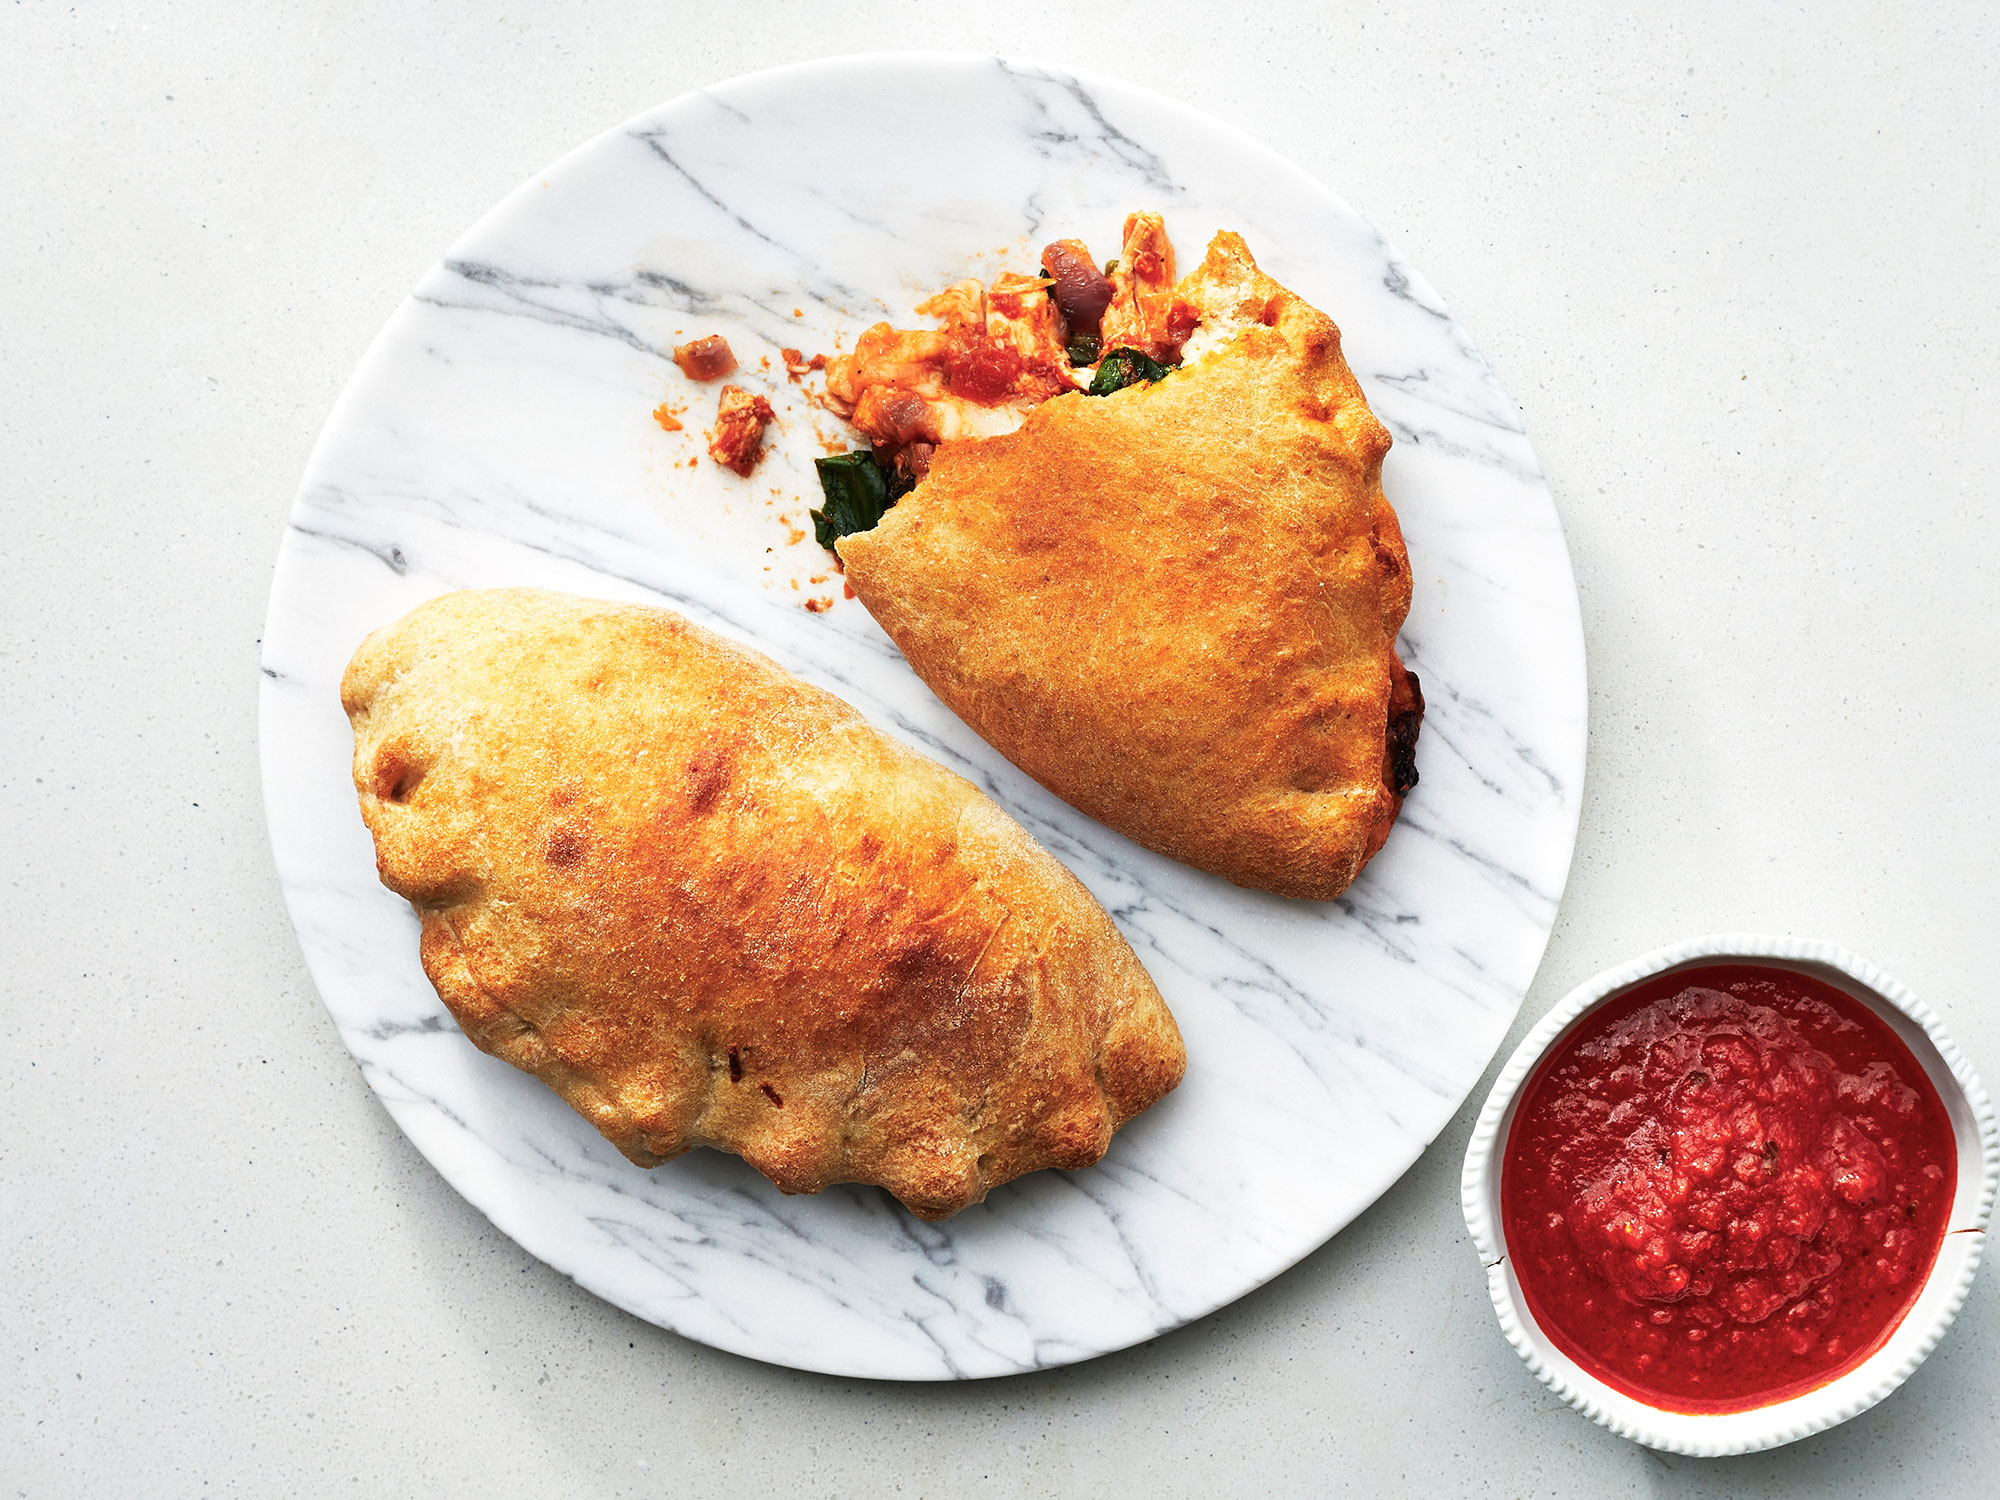 10 Mouthwatering Calzone Recipes